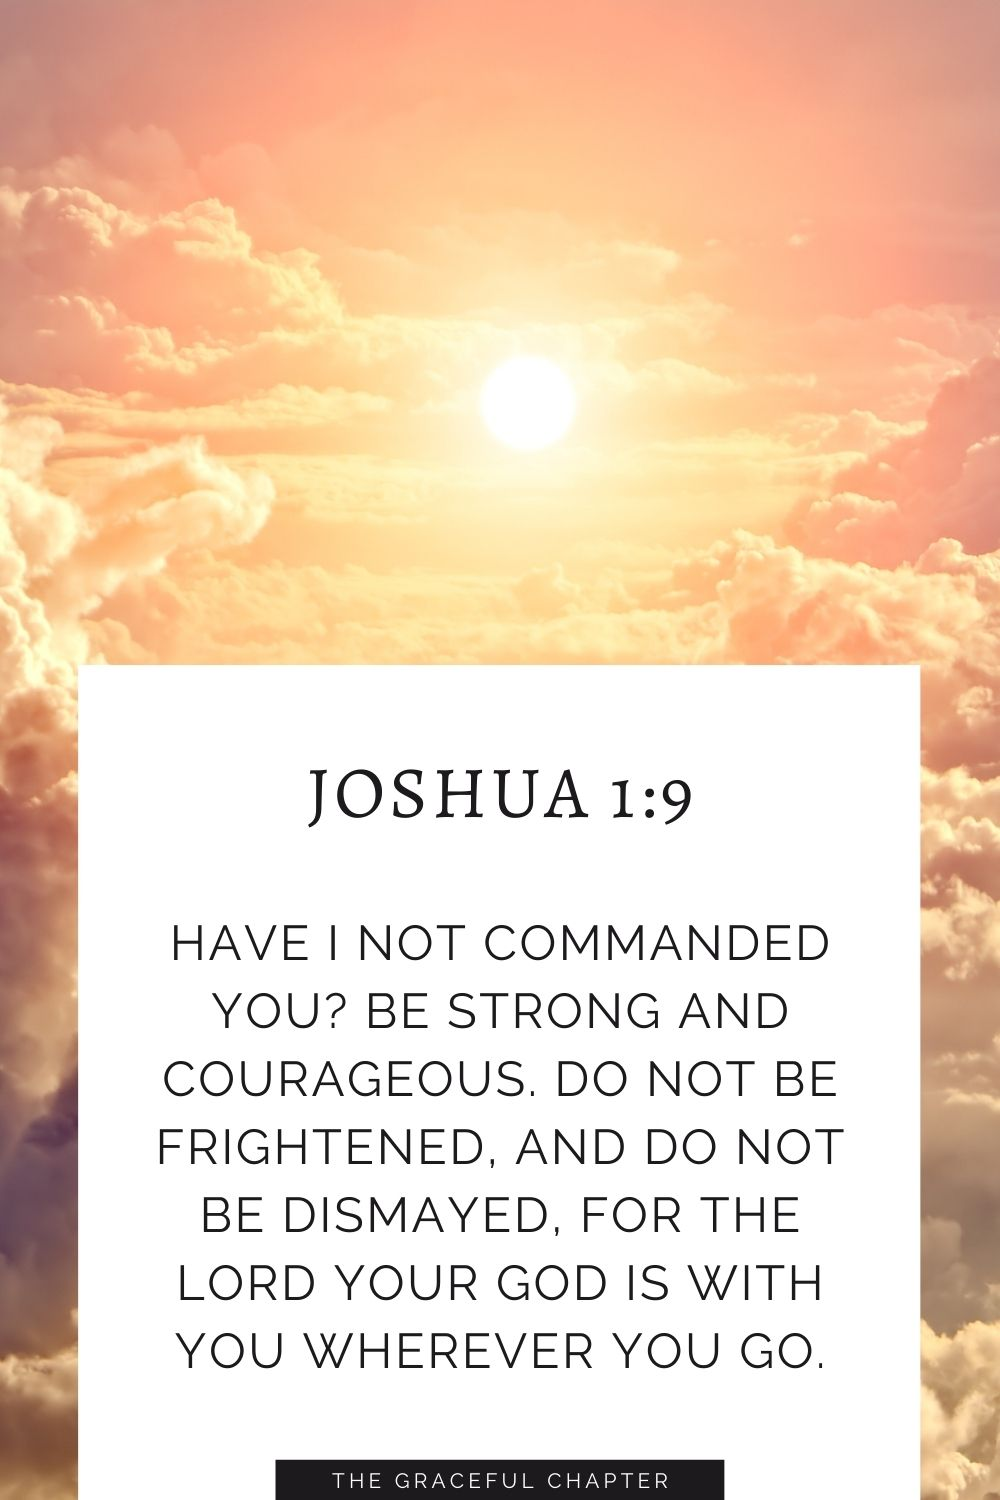 Have I not commanded you? Be strong and courageous. Do not be frightened, and do not be dismayed, for the Lord your God is with you wherever you go.Have I not commanded you? Be strong and courageous. Do not be frightened, and do not be dismayed, for the Lord your God is with you wherever you go. Joshua 1:9